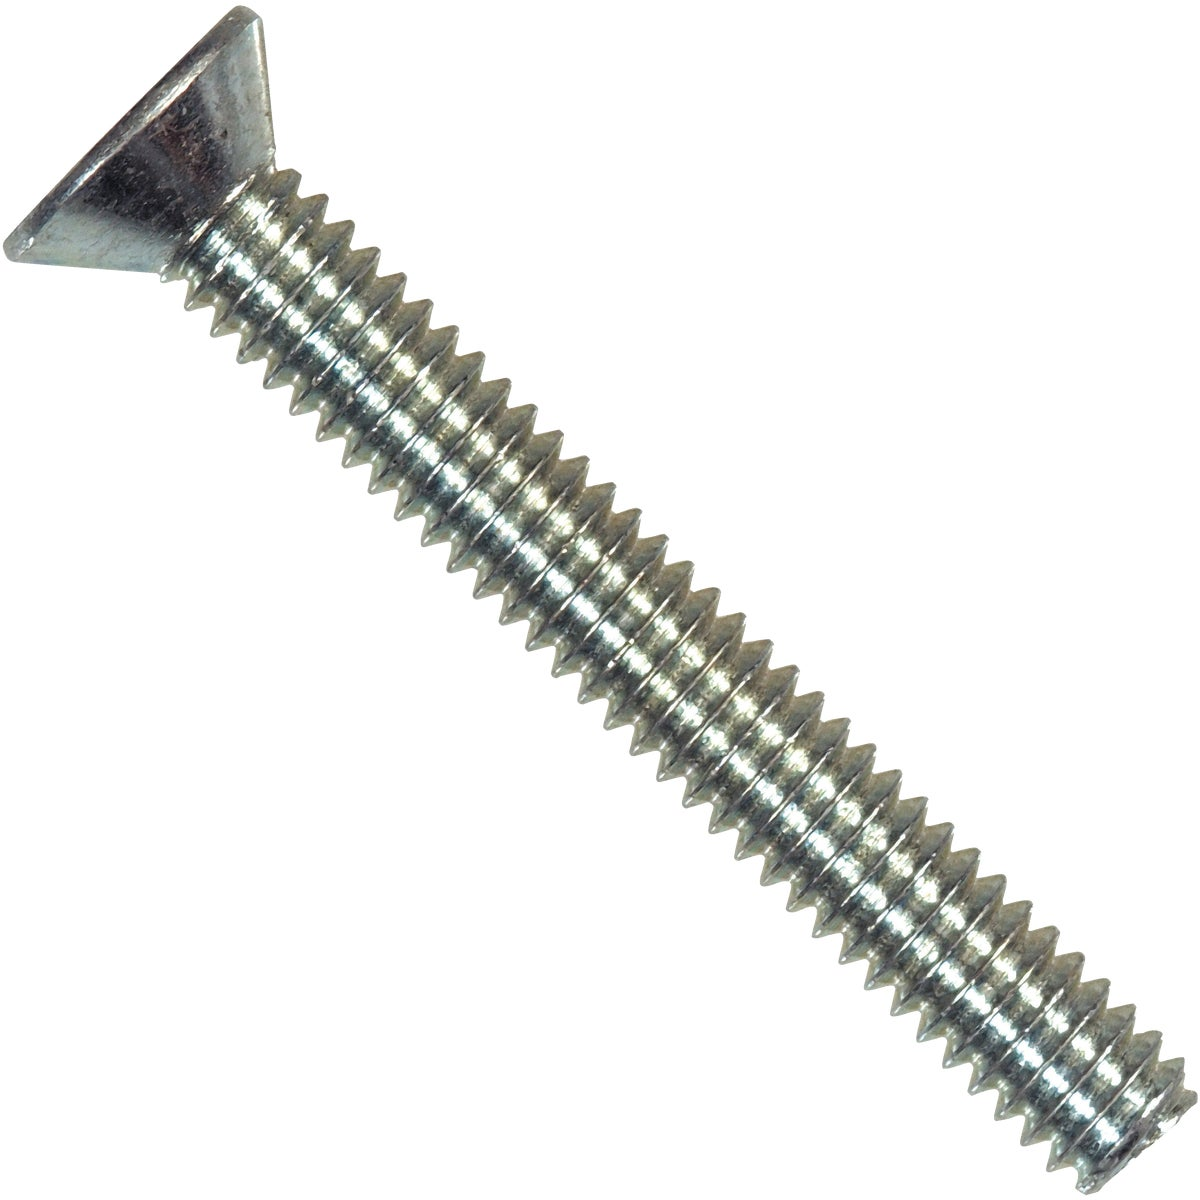 10-24X3/4 PH MACH SCREW